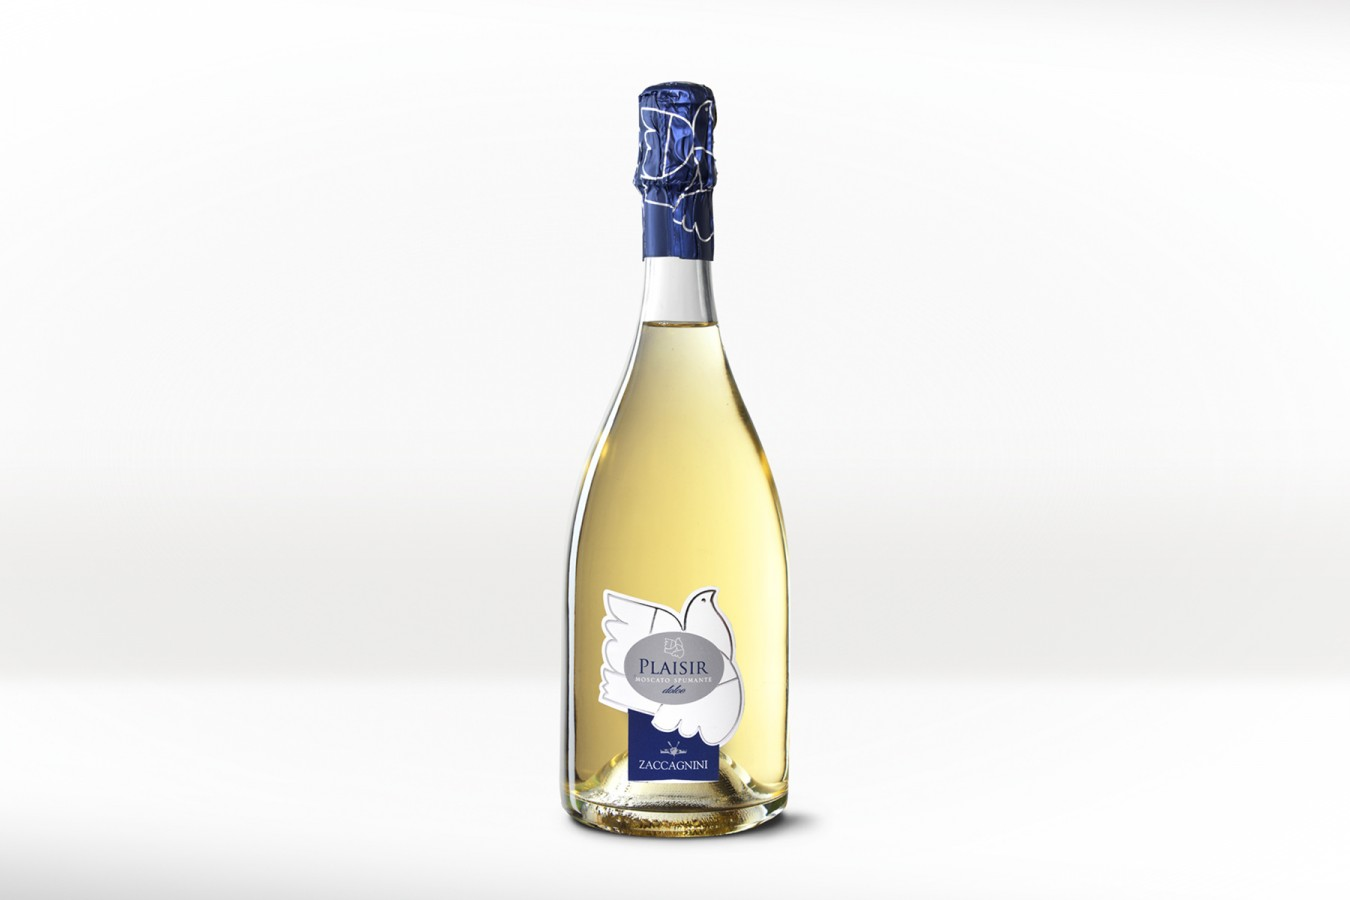 ZACCAGNINI_PLAISIR_SPUMANTE_WINE_SPARKLING_PACKAGING_LABEL_DESIGN_SPAZIO-DI-PAOLO_MARIO-DI-PAOLO_5